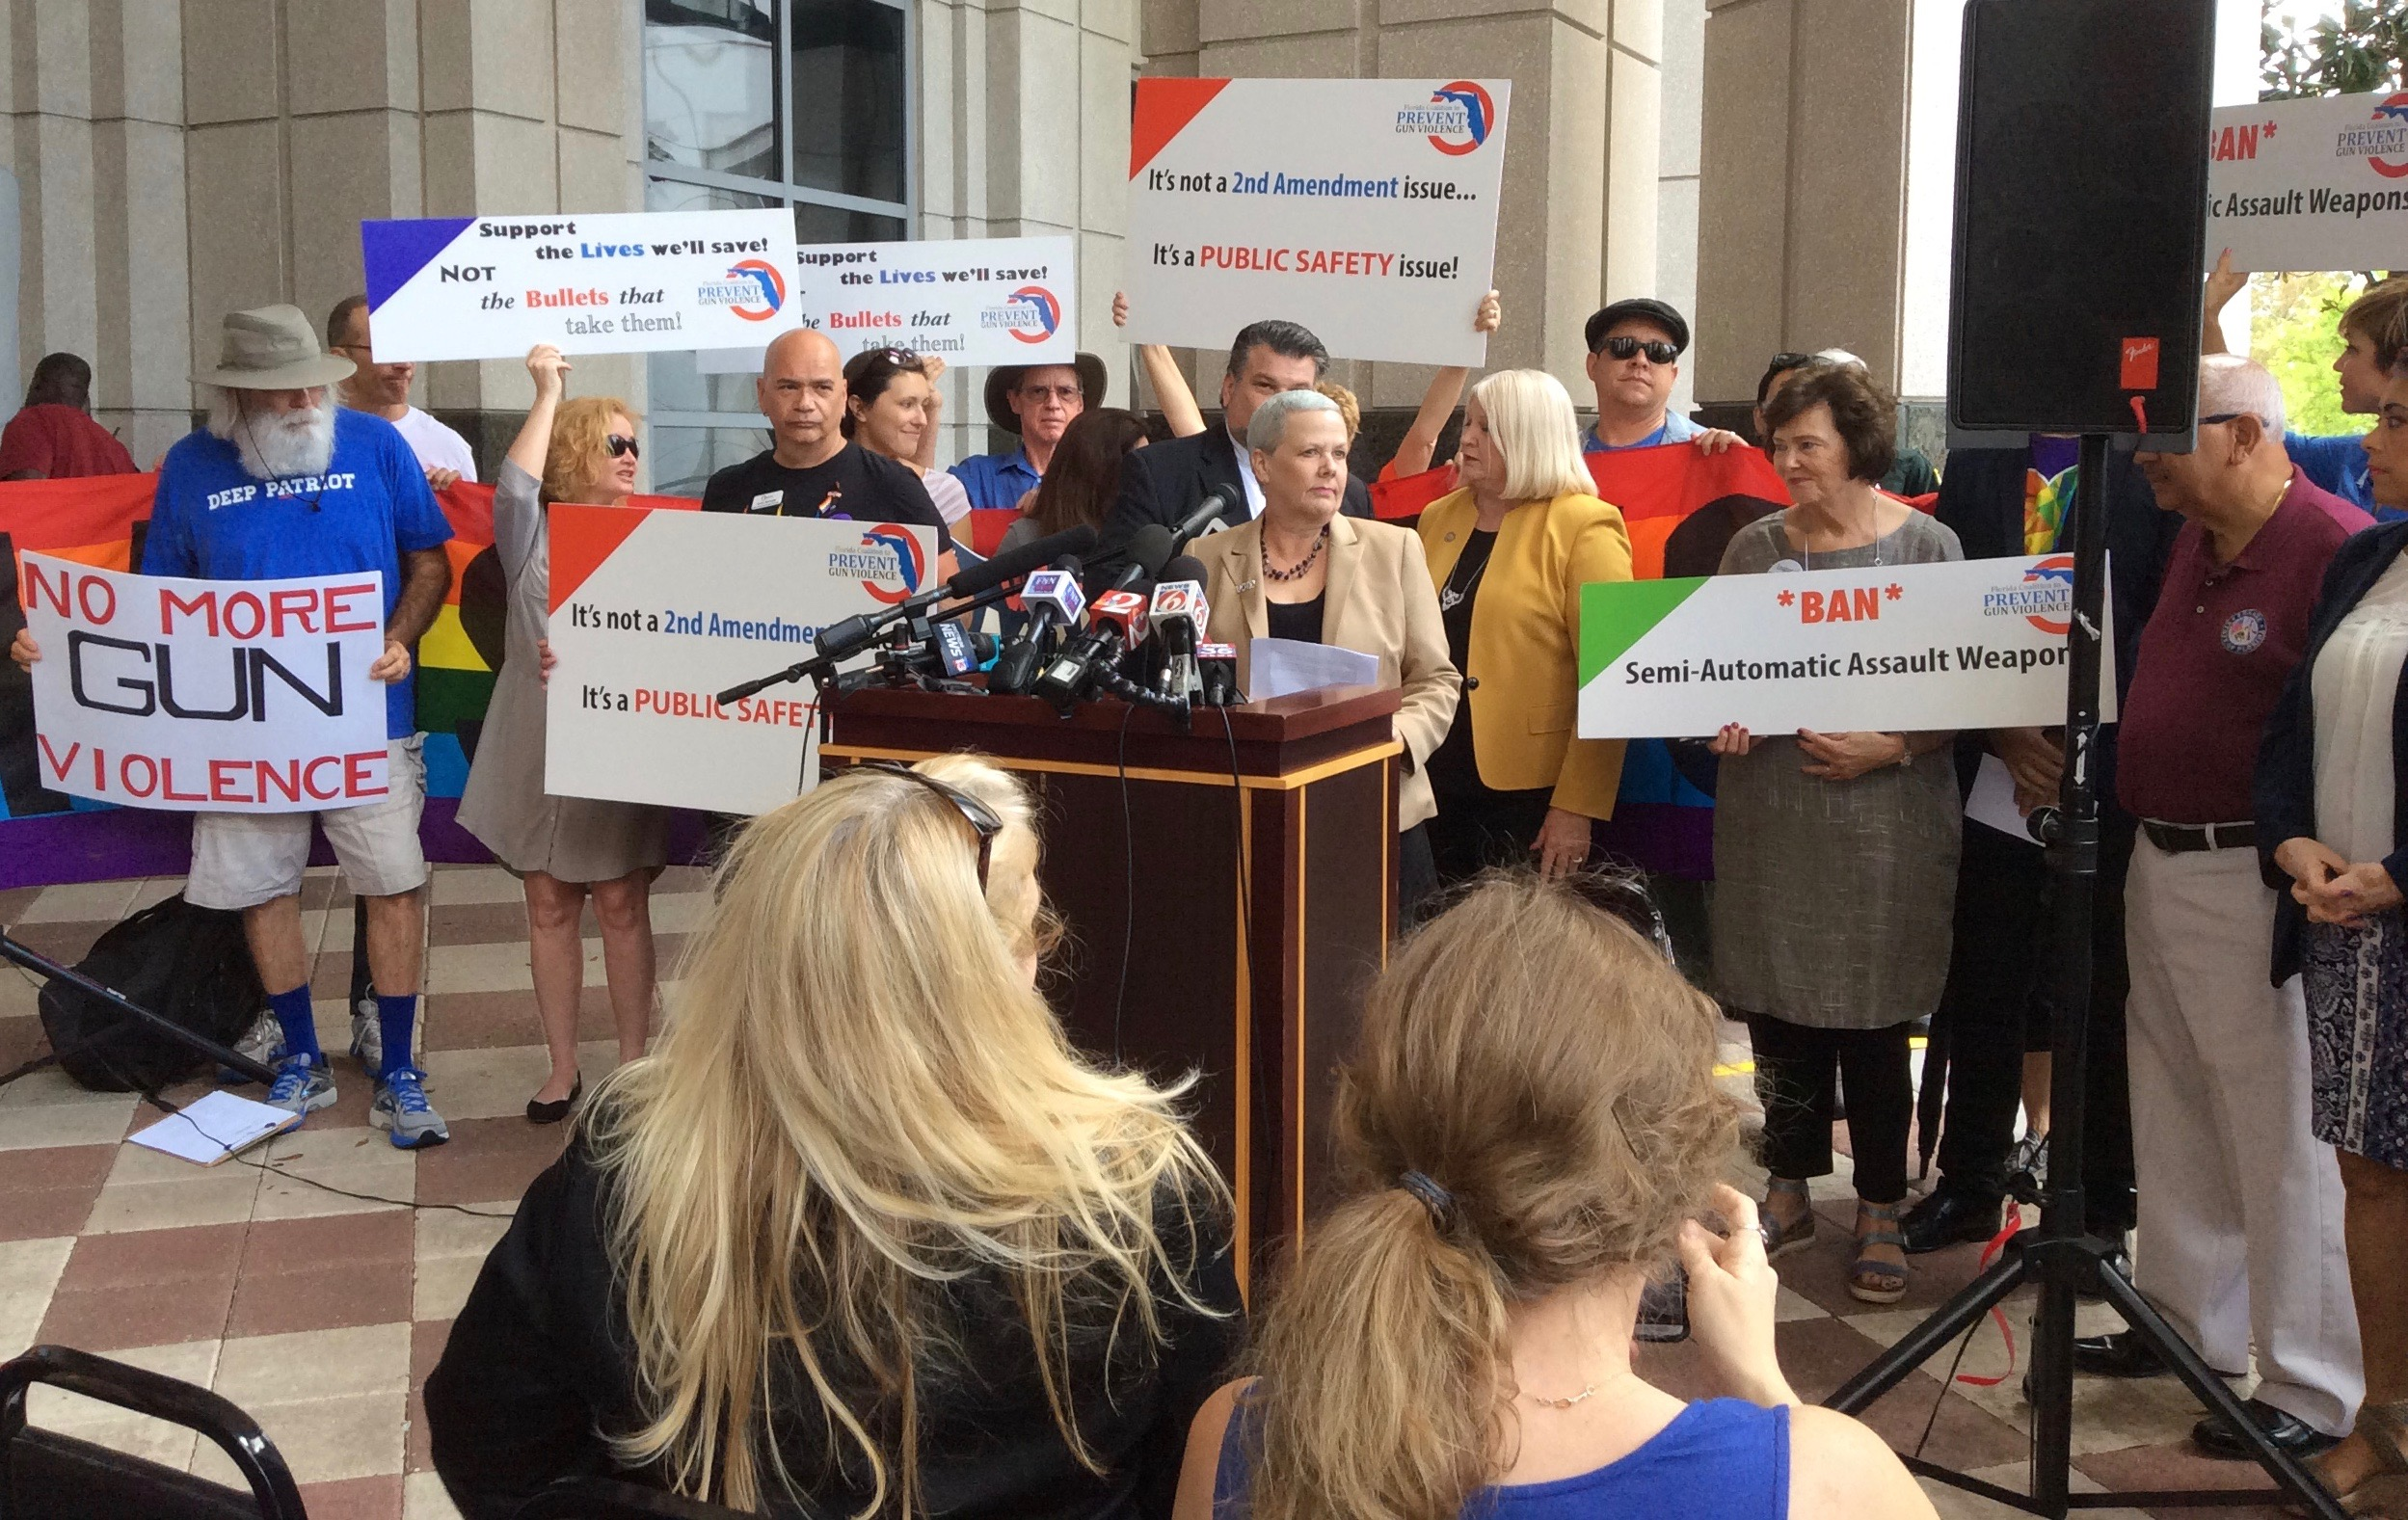 Pulse victim's mom, state lawmakers urge action on assault weapons ban in this news coverage by the Orlando Sentinel